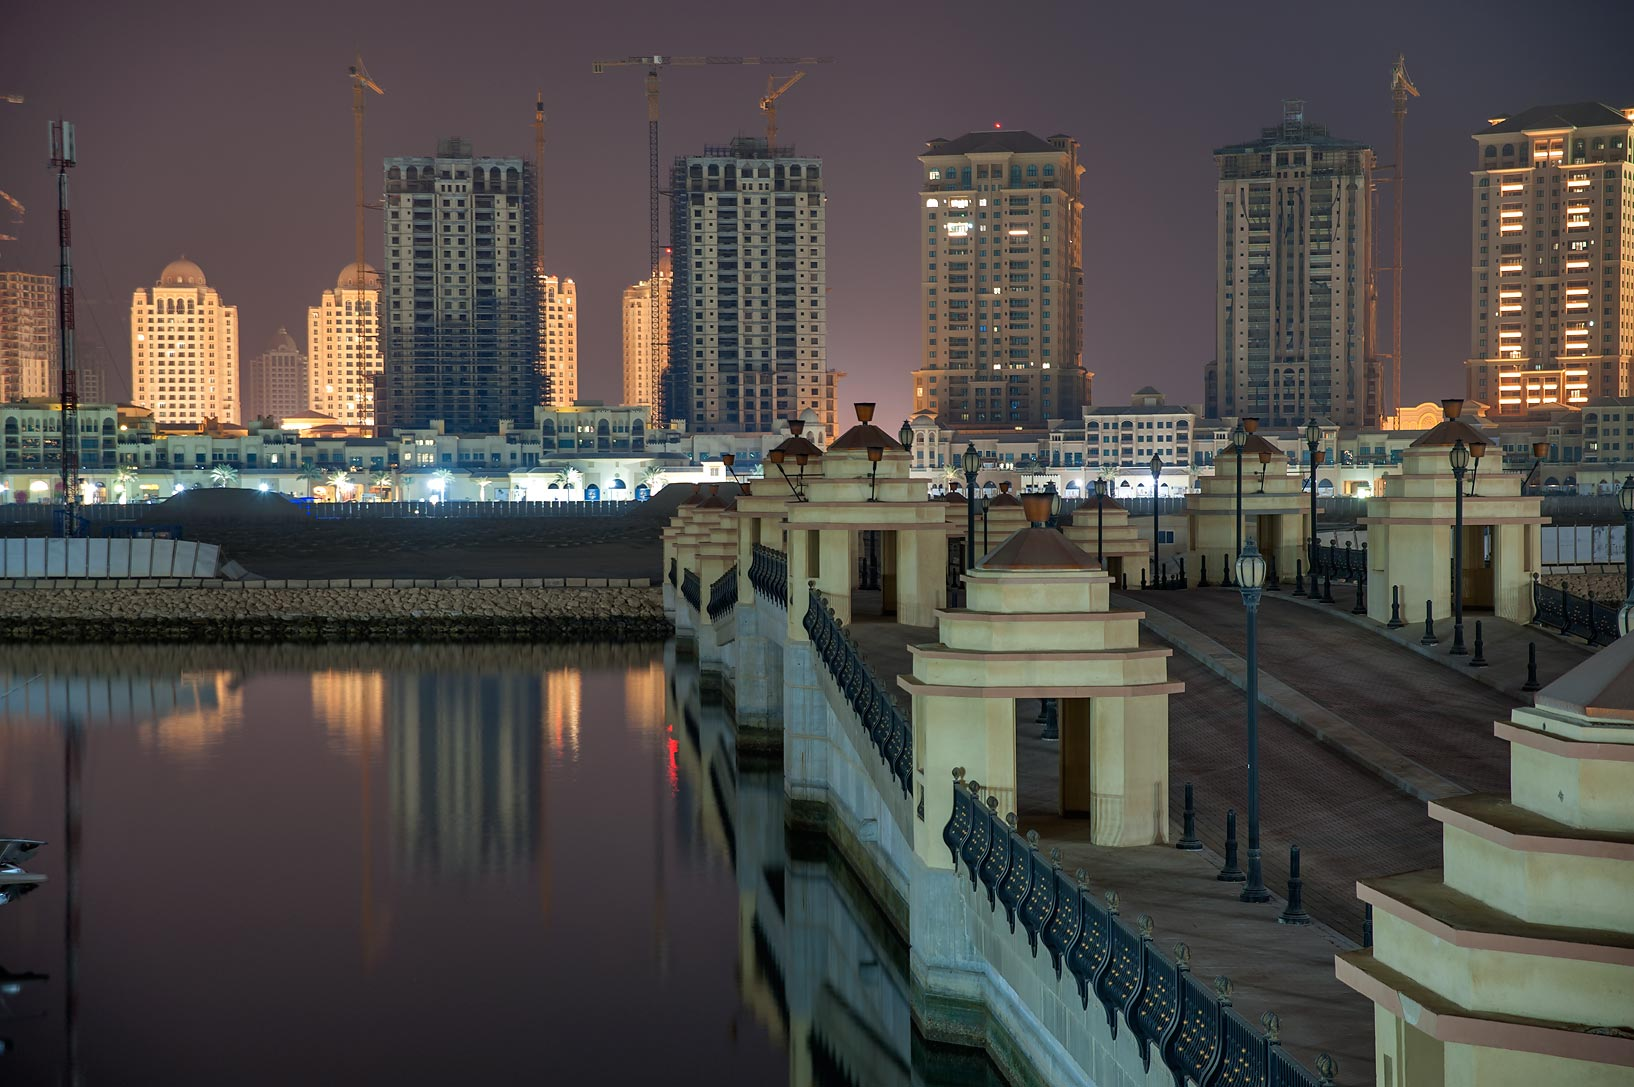 Bridge to Marsa Arabia in Pearl Qatar Development. Doha, Qatar